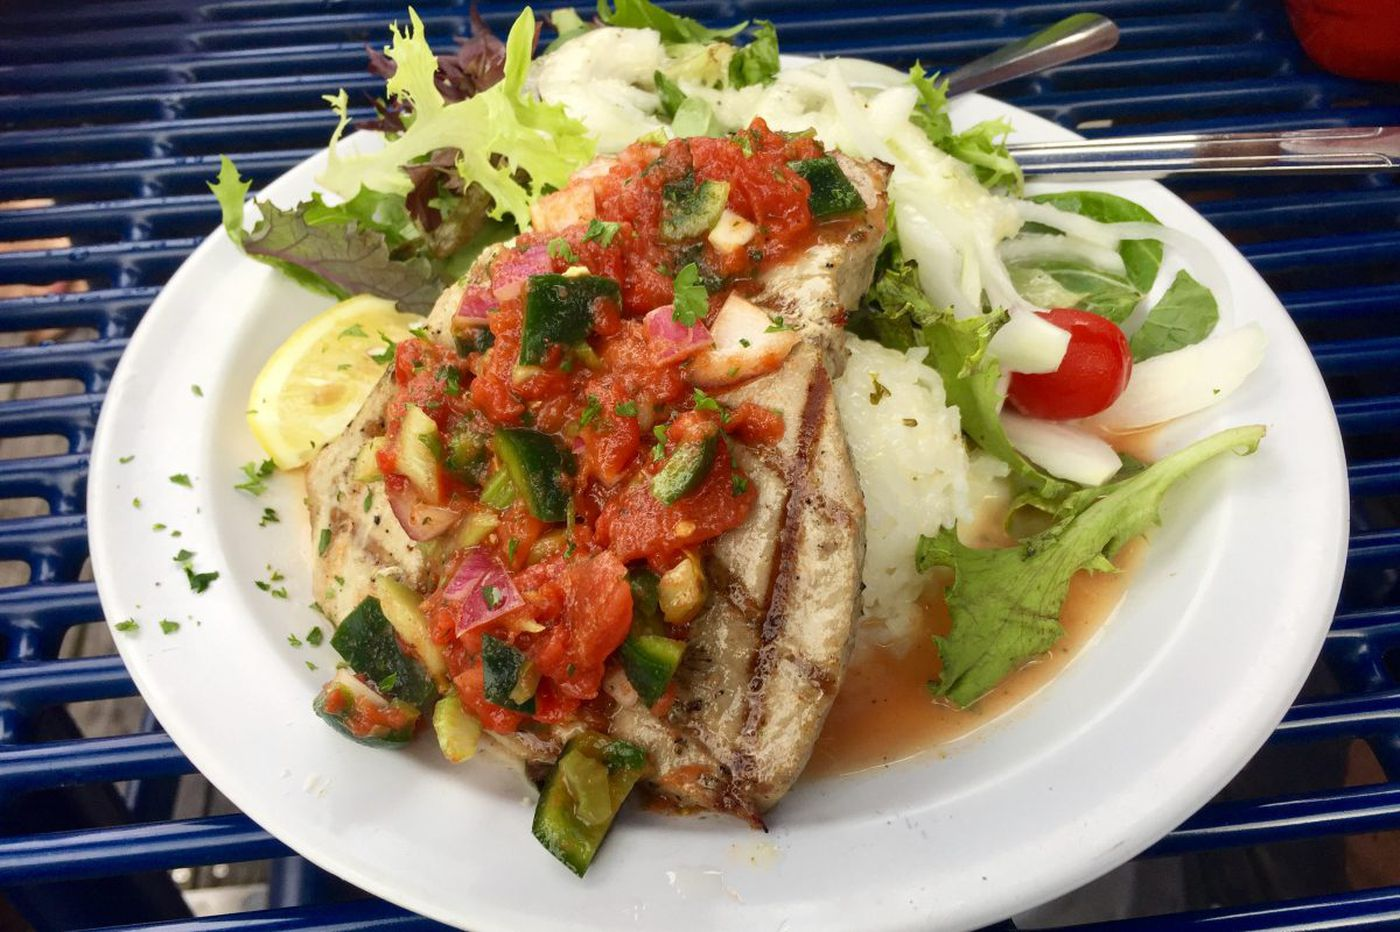 Real food on the Boardwalk? The Hula delivers again